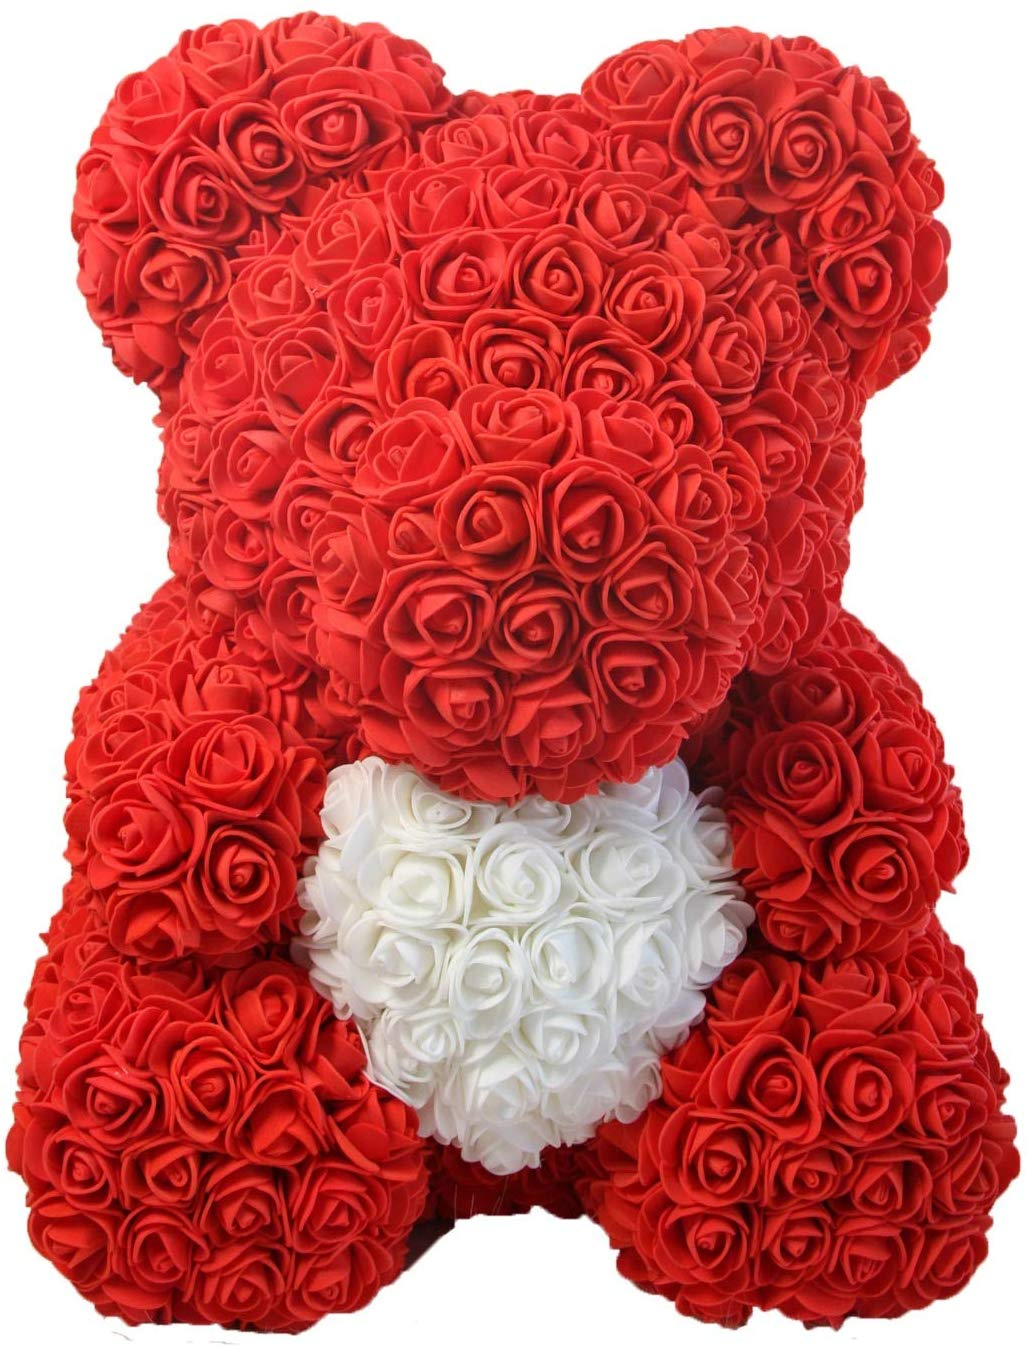 Rose Bear - Anniversary, Best, Perfect & Unique Gift Ideas for Lovers, Women, Men, Teen, Wife, Husband, Him, Her, Teen - 25cm